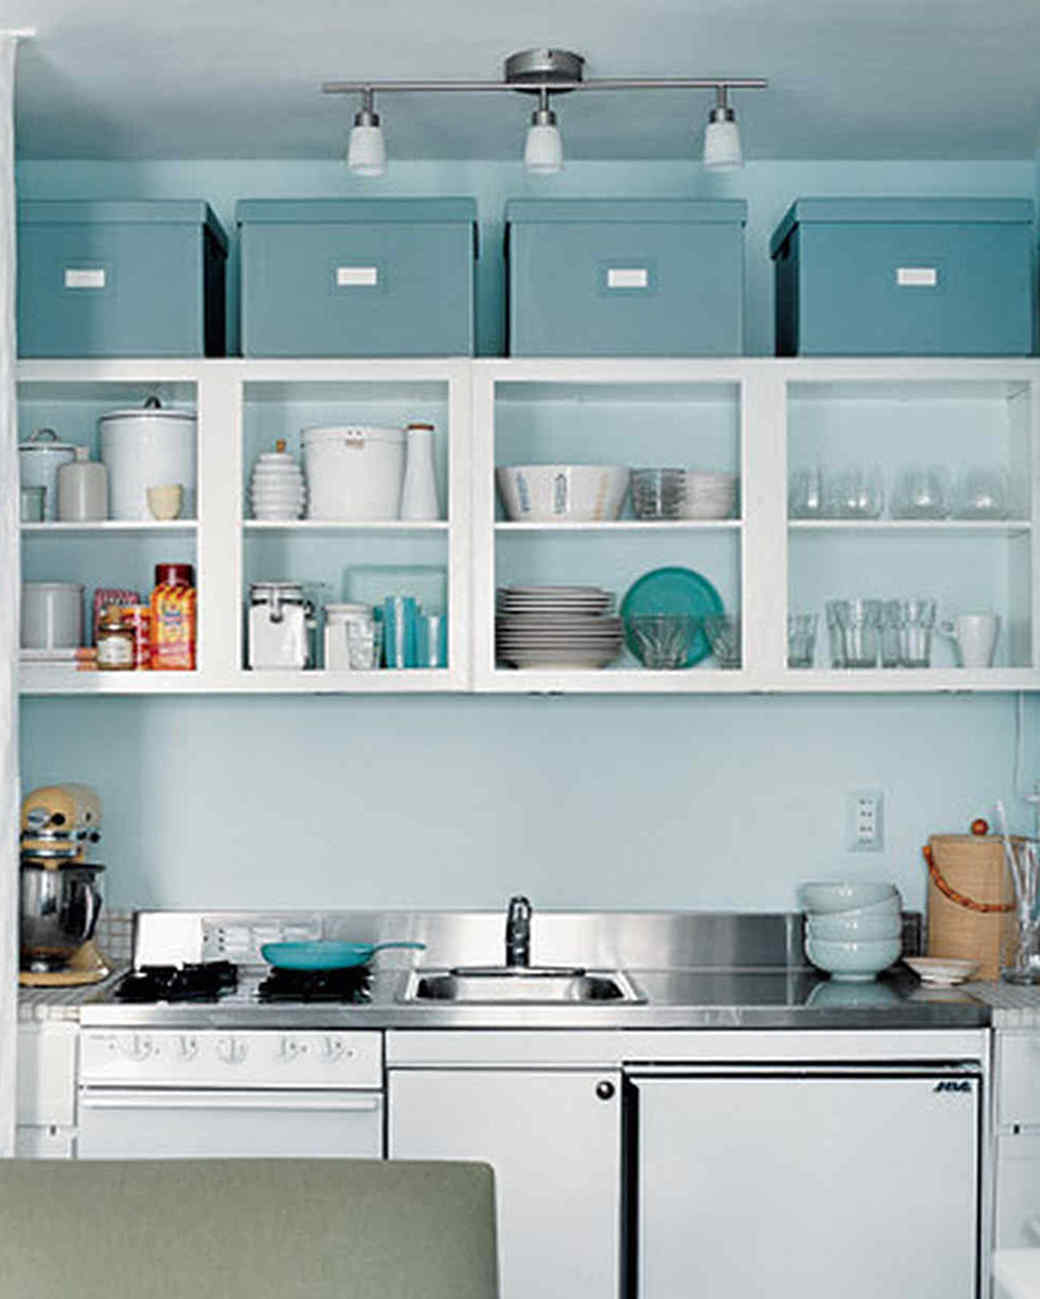 Kitchen Cabinet Design Ideas For Small Spaces: Small Kitchen Storage Ideas For A More Efficient Space